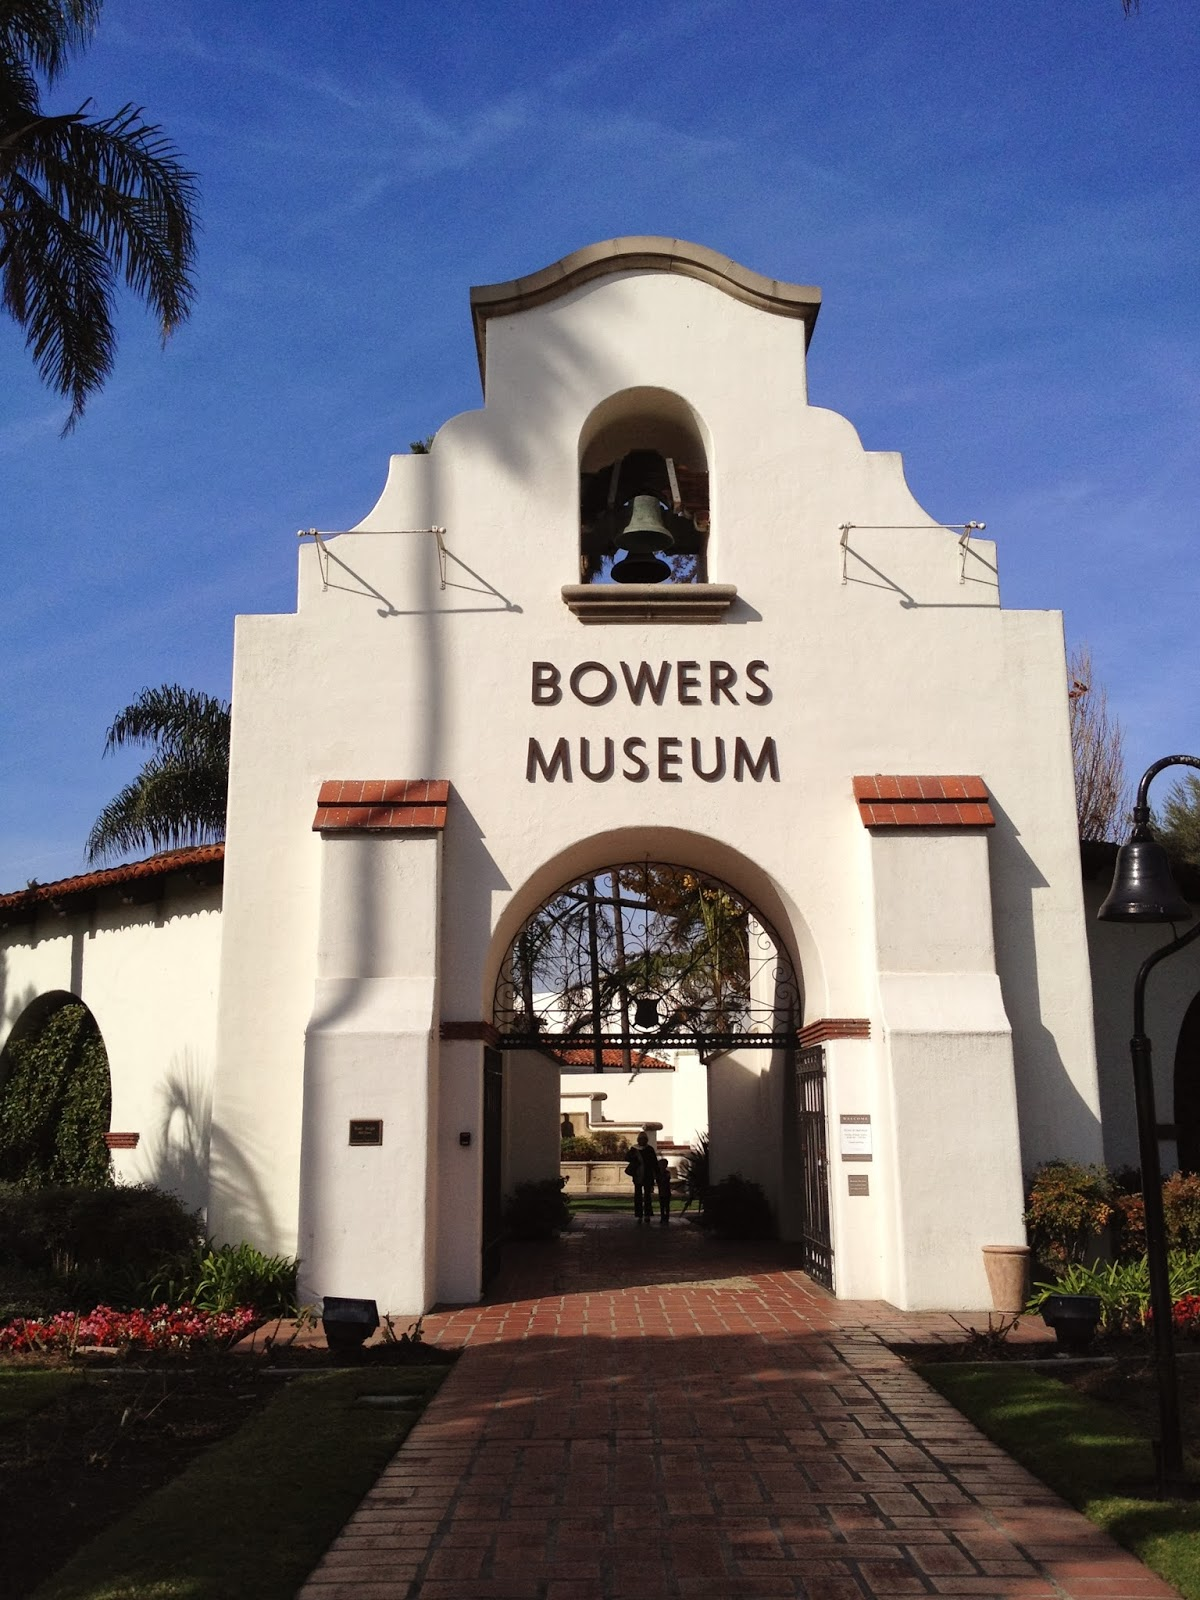 bowers museum Bowers museum of cultural art, santa ana: see 340 reviews, articles, and 151 photos of bowers museum of cultural art, ranked no2 on tripadvisor among 39 attractions in santa ana.